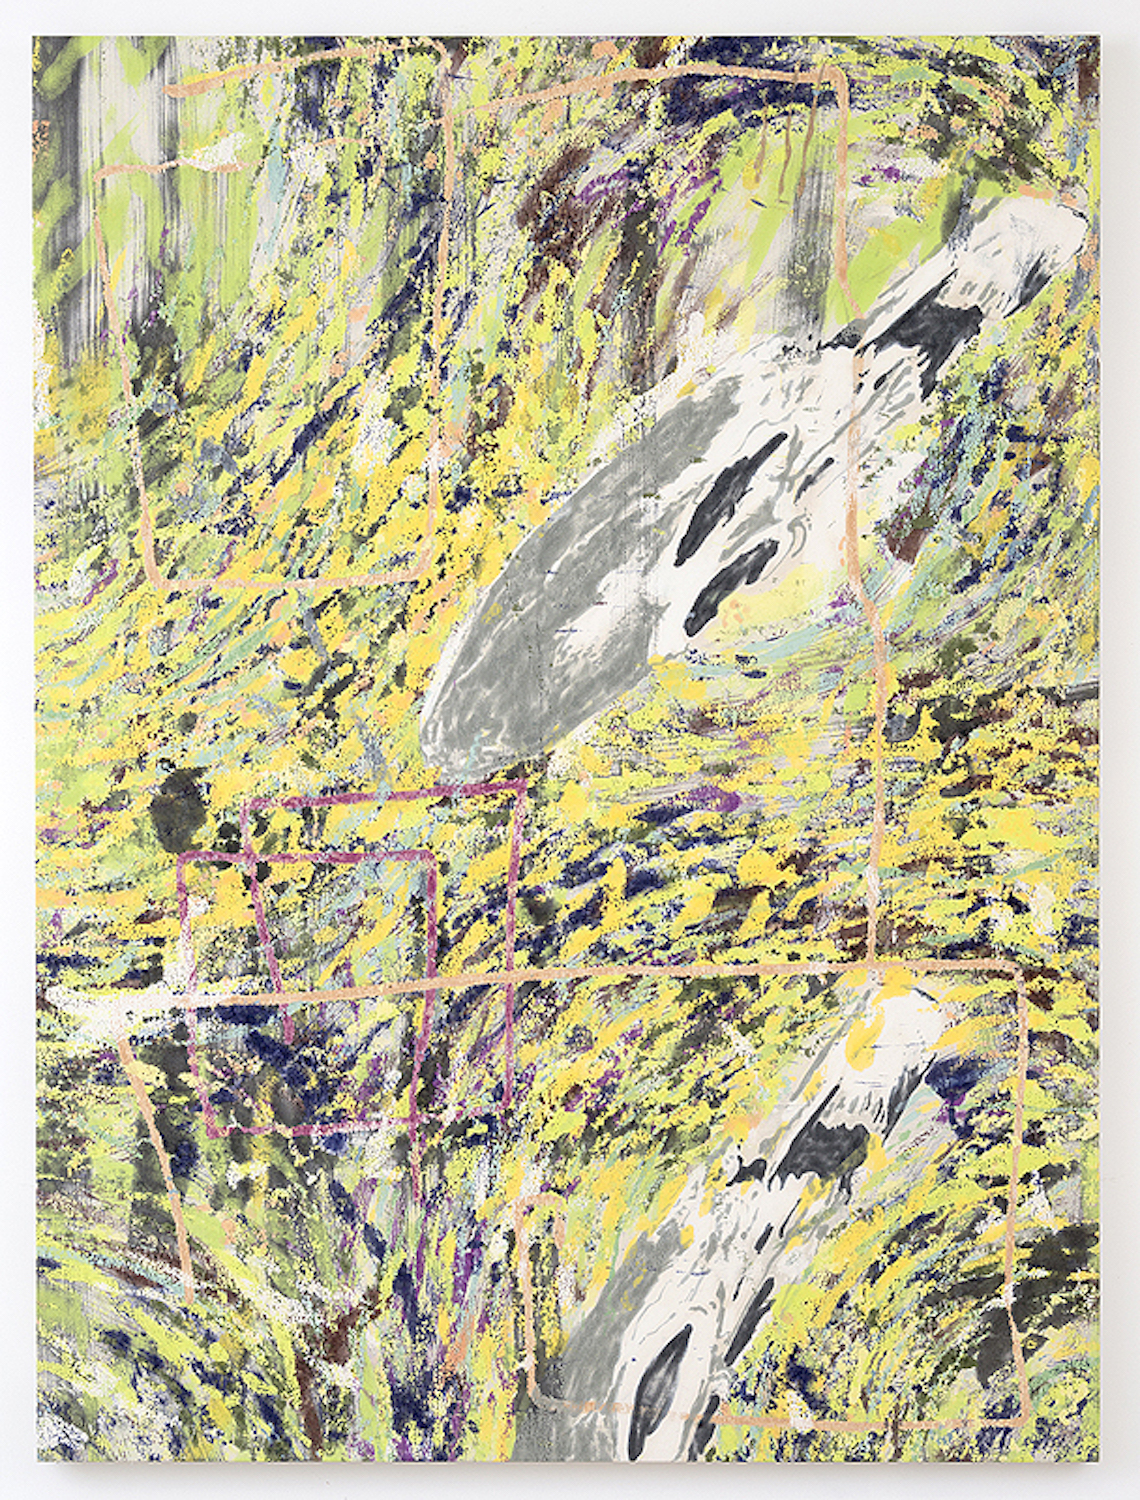 Chris Hood   IRL (Double Anamorph) , 2015  Oil on canvas  79.75 x 59 inches  202.57 x 149.86 cm